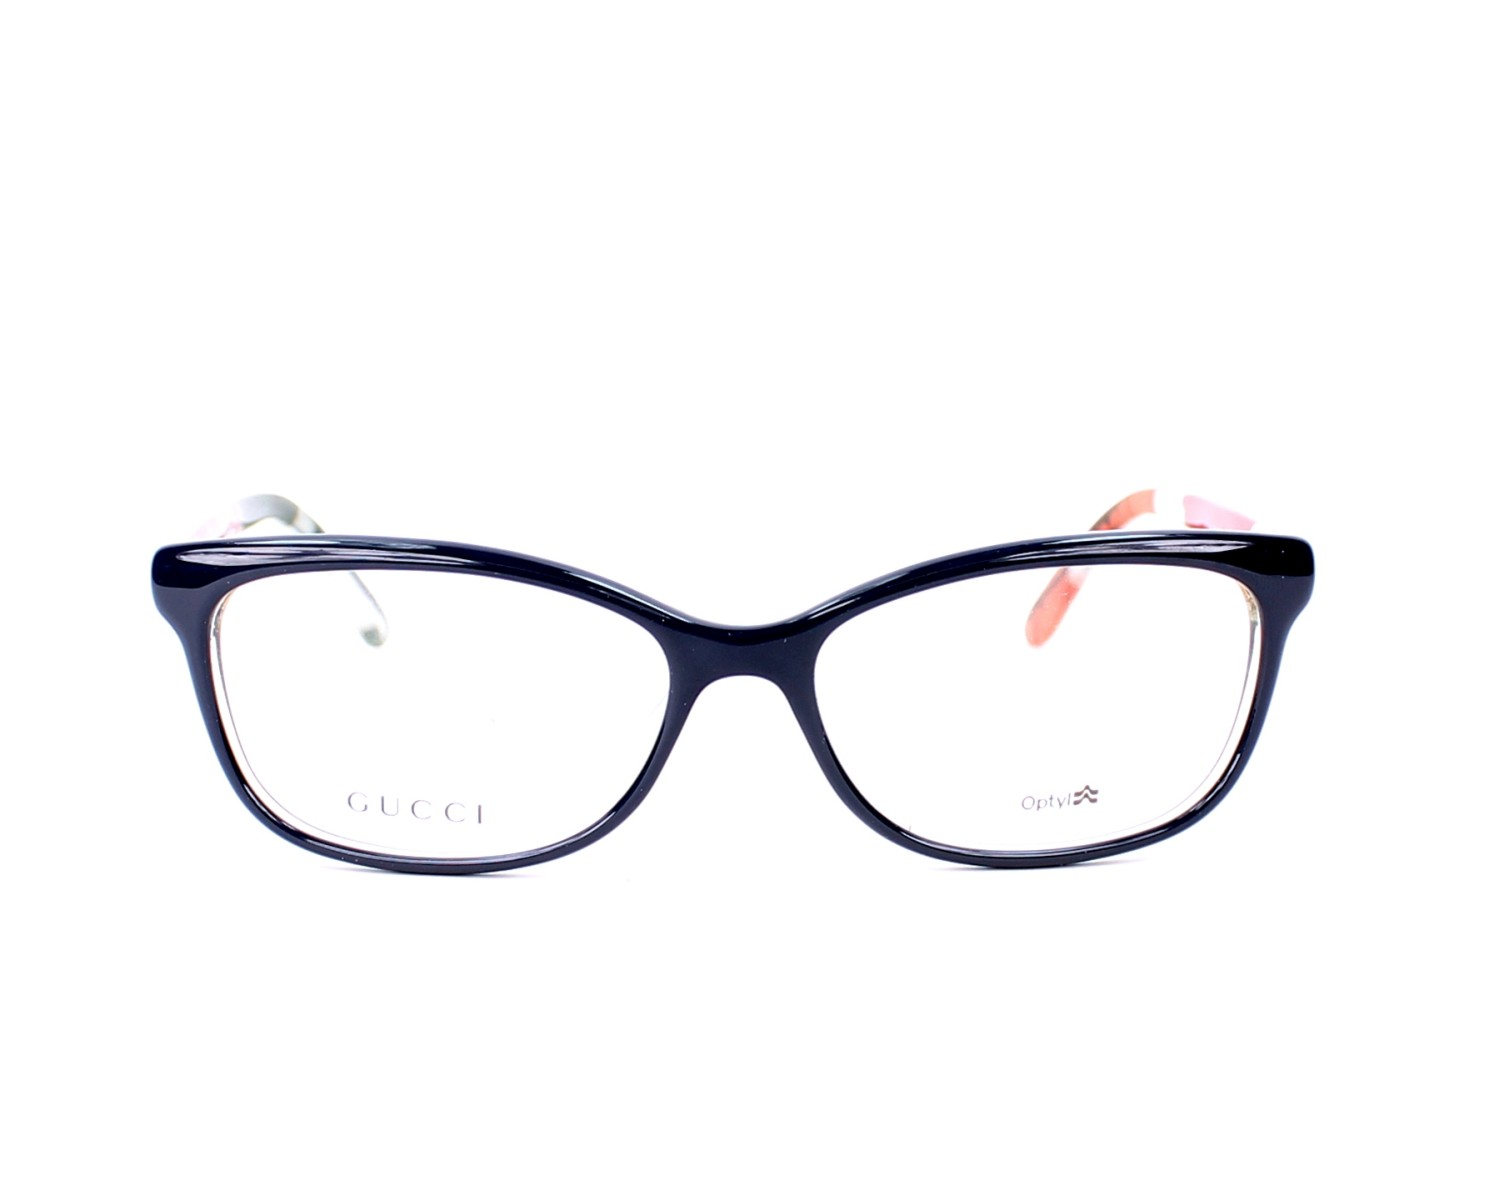 04172016057 eyeglasses Gucci GG-3699-N WQ3 - Blue Clear front view